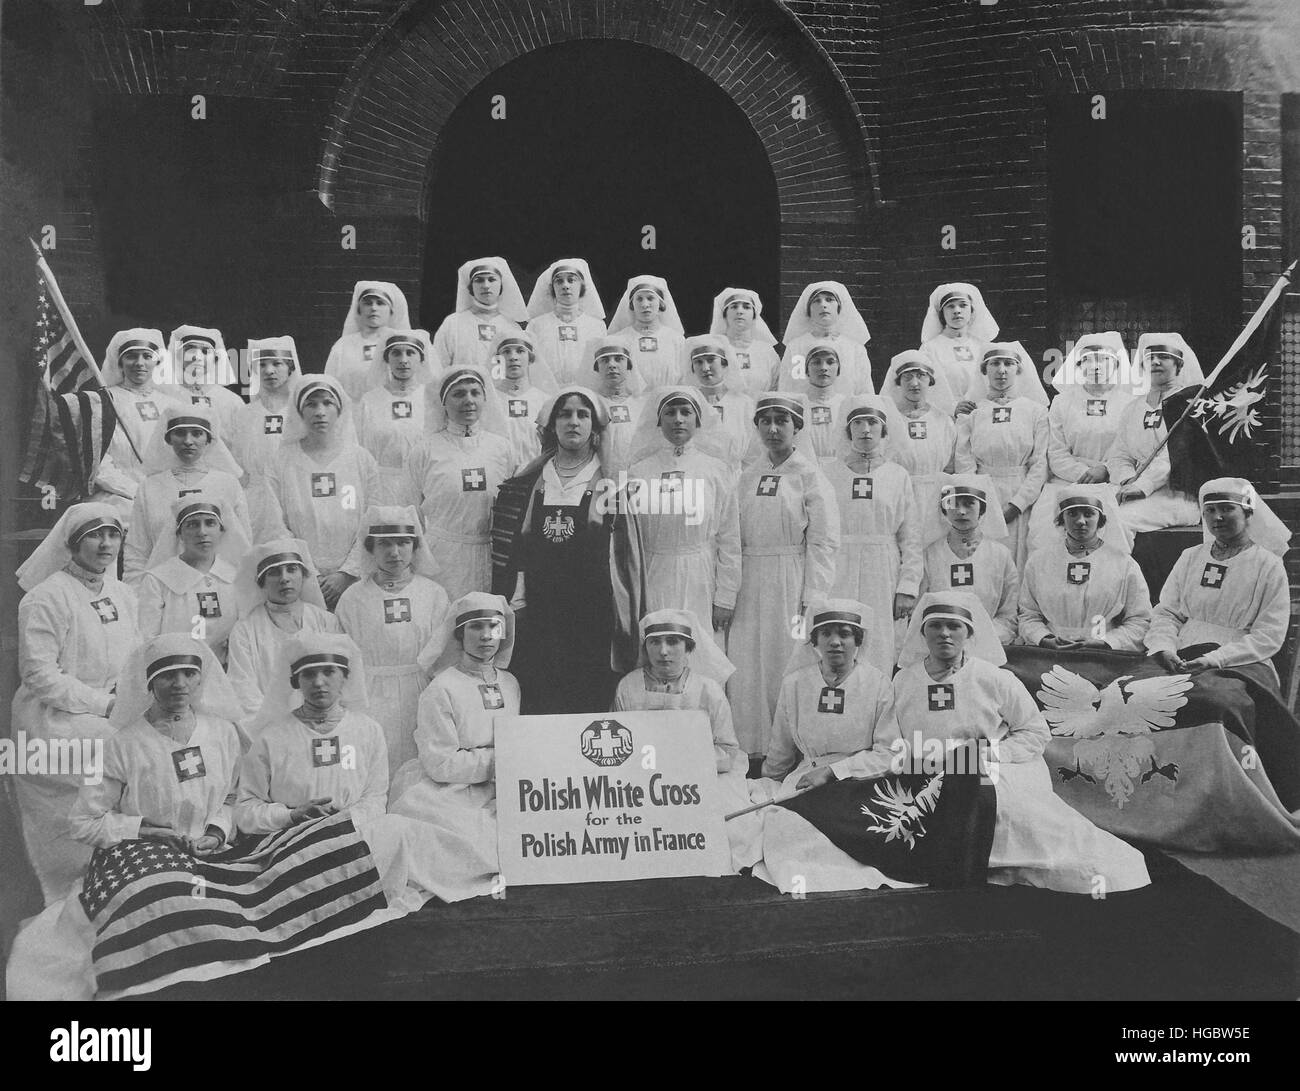 Group of nurses from the Polish White Cross. - Stock Image